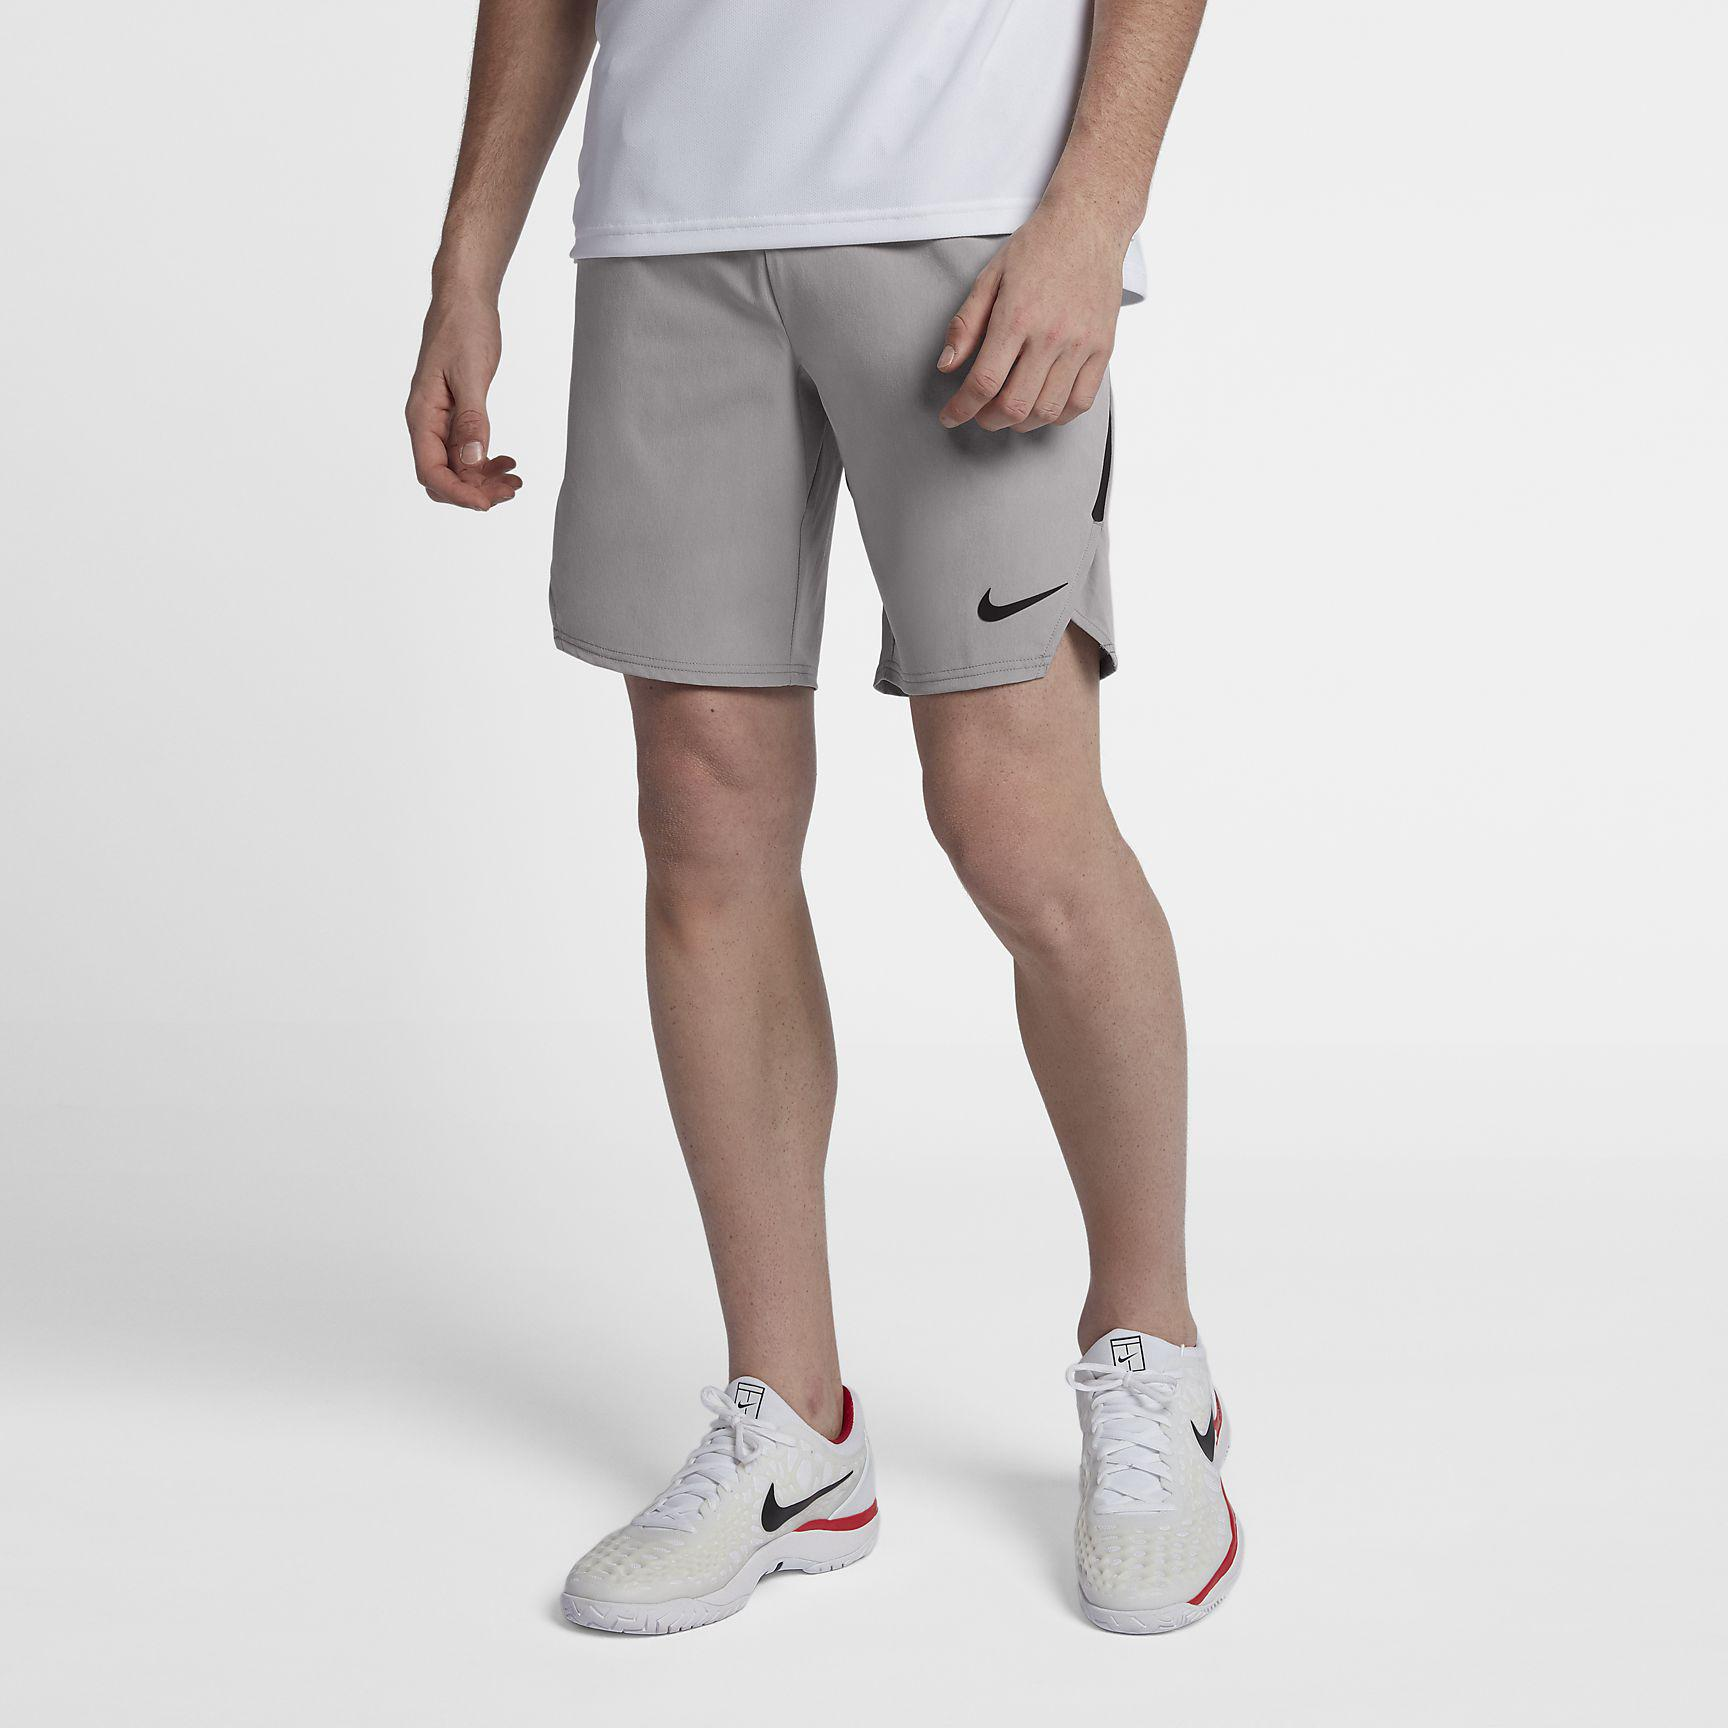 competitive price 84988 697e3 Nike Mens Flex Ace 9 Inch Shorts - Atmosphere Grey Black